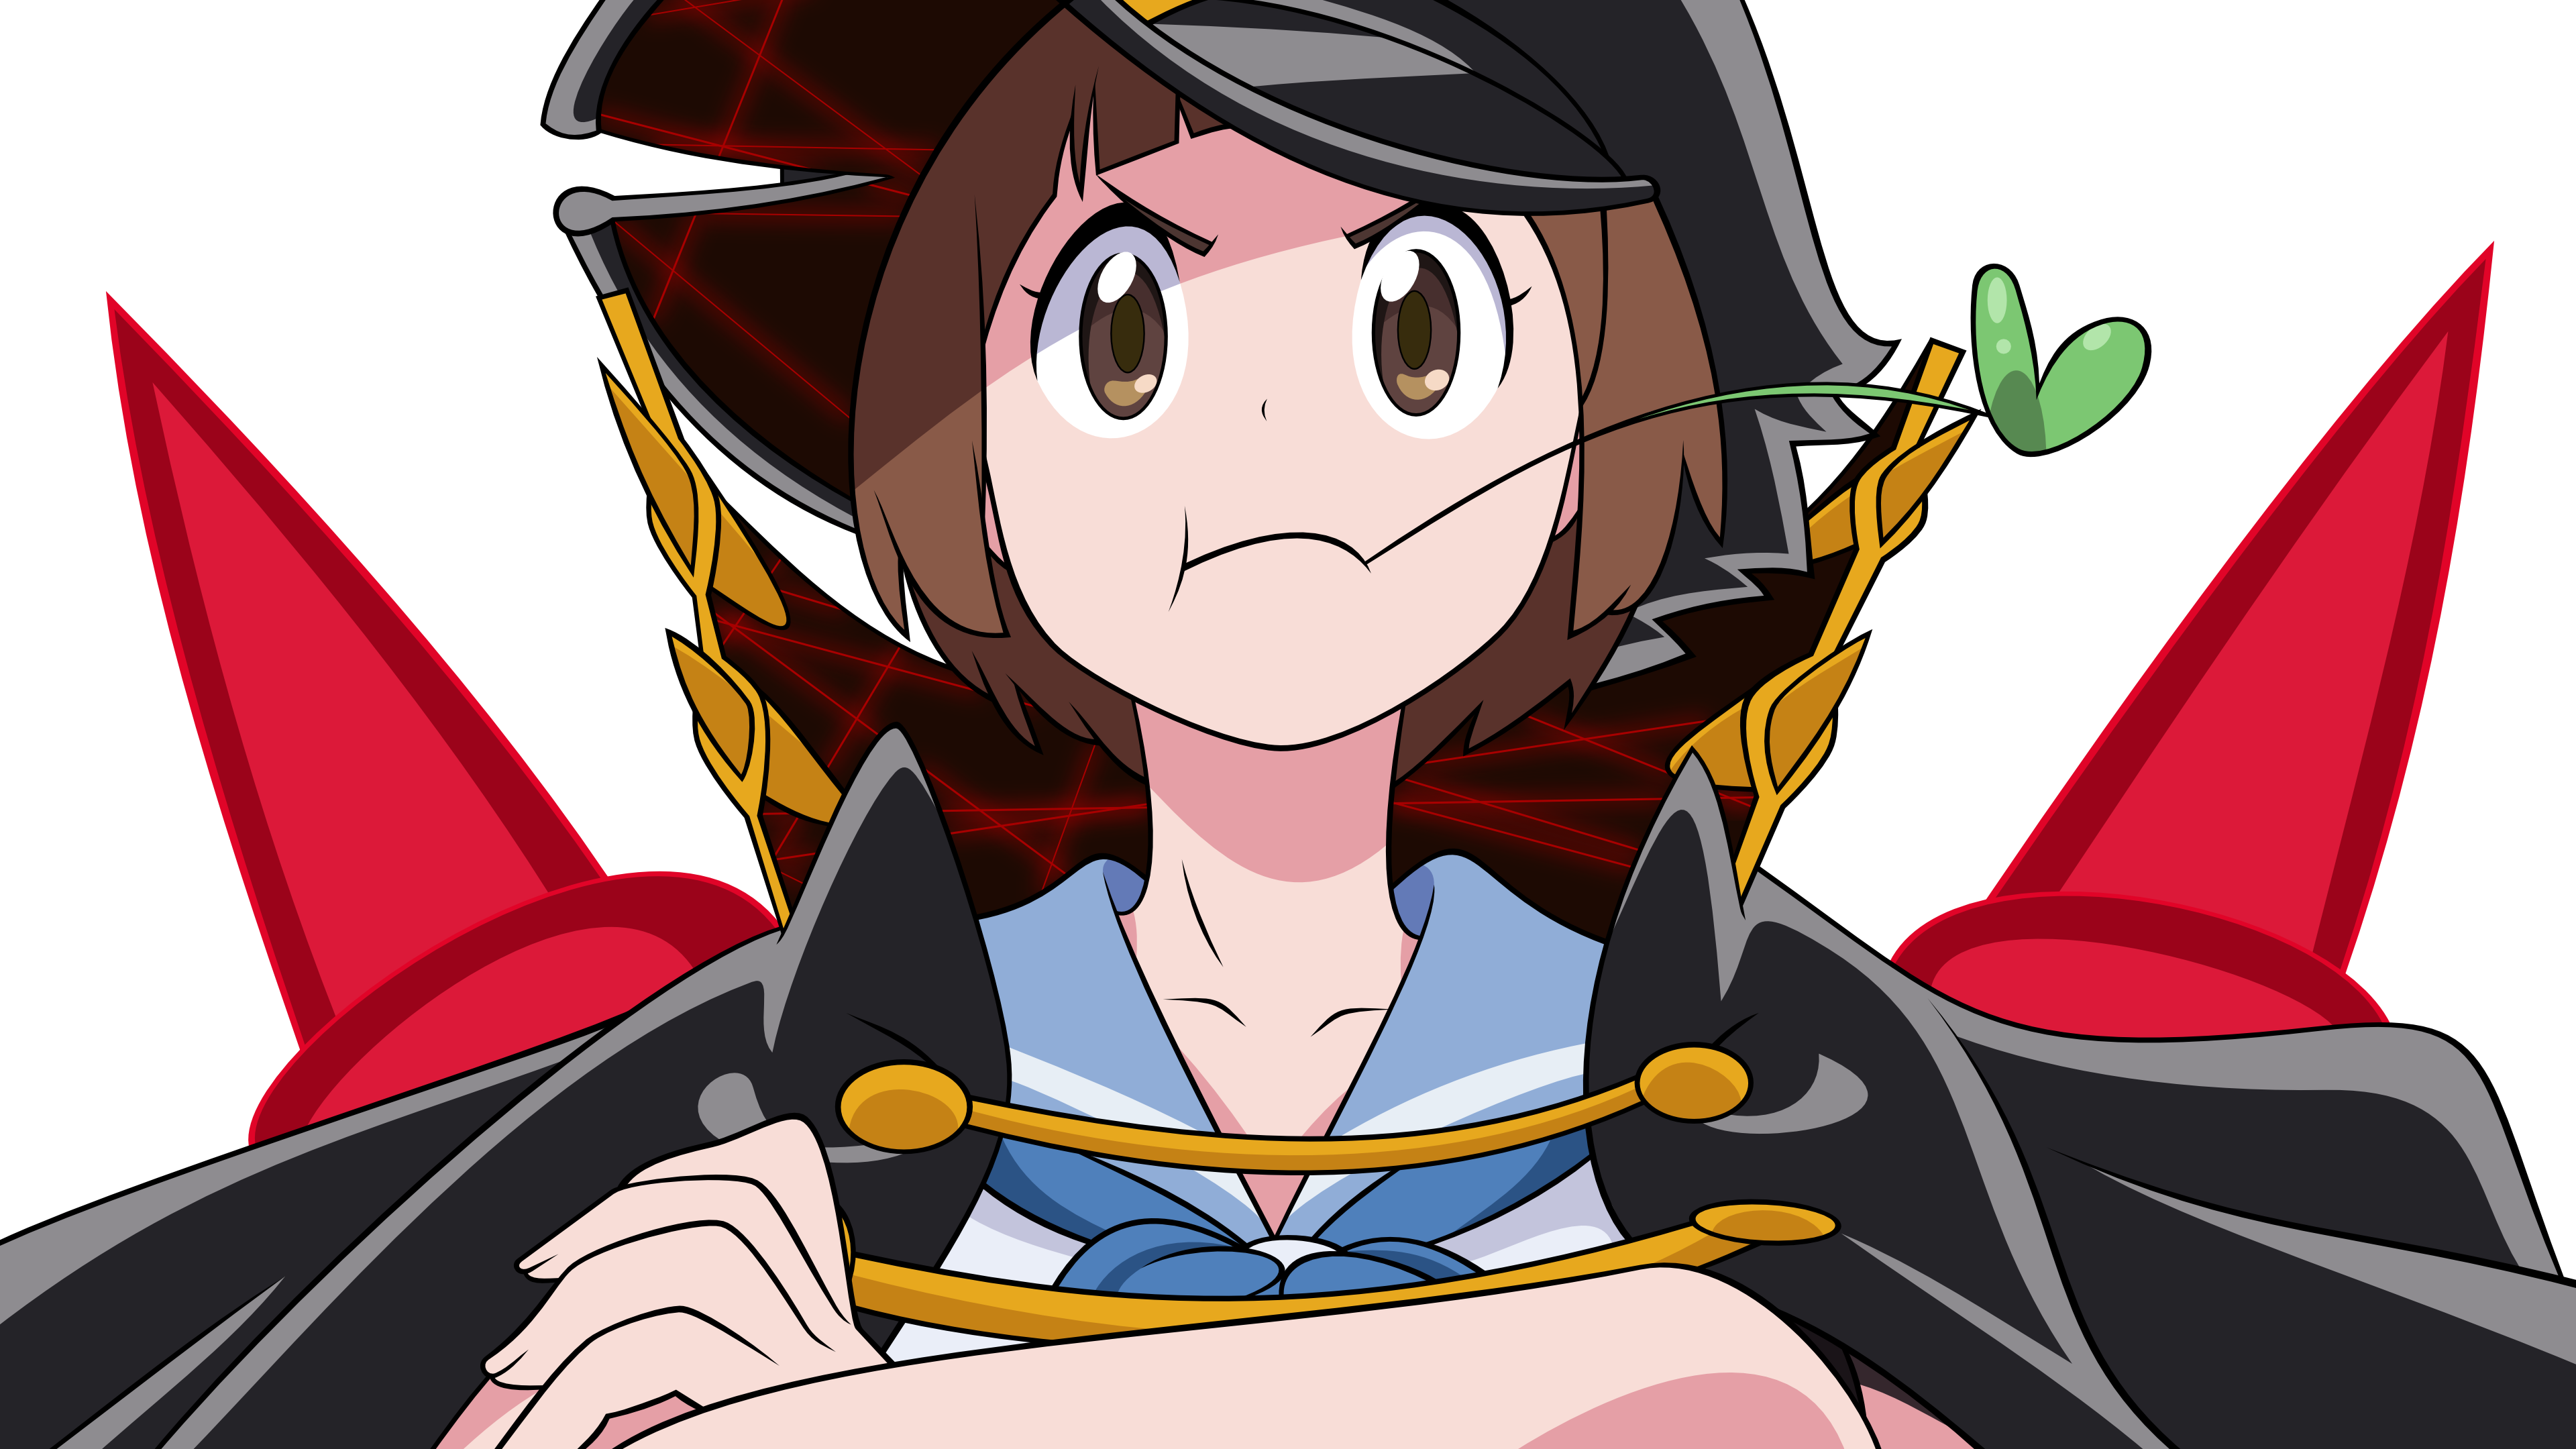 Anime Characters Png : Favorite goofy anime character daily art